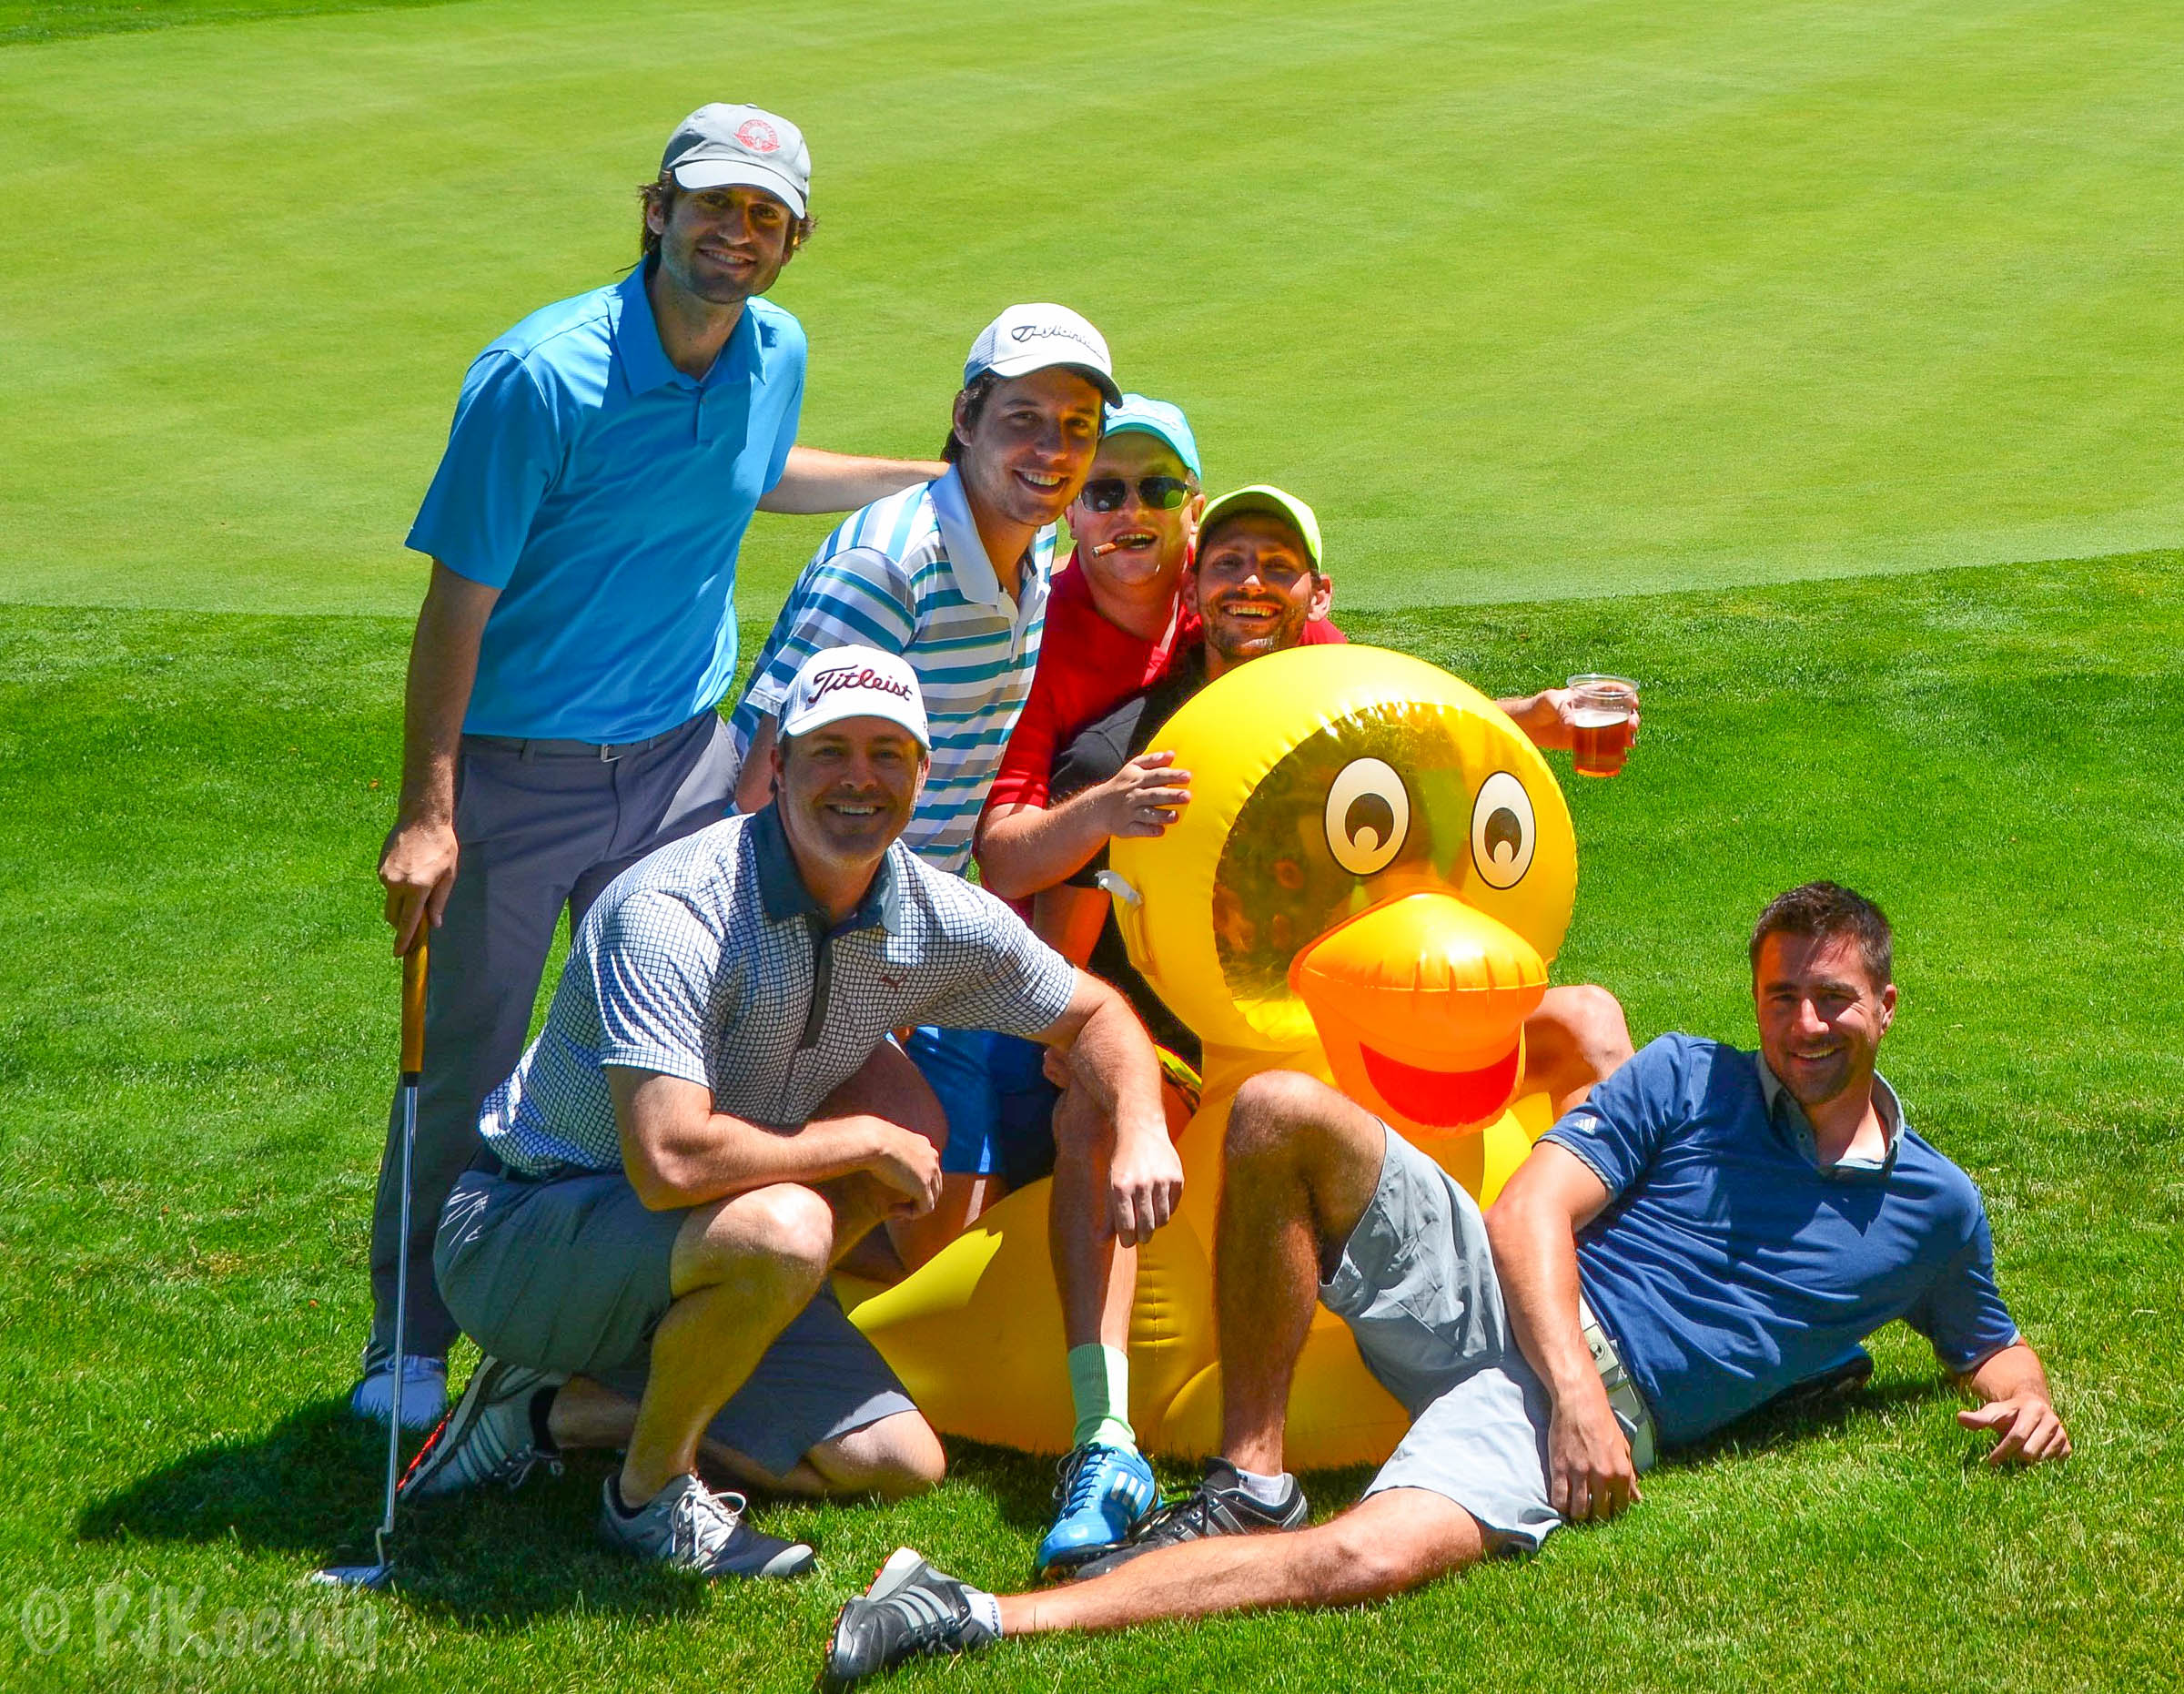 From left to right: Joey the Cat, Kris Buerkle, Ryan Pearce, John Kennelly, Joe Garvey, Danny the Duck, Patrick Koenig.